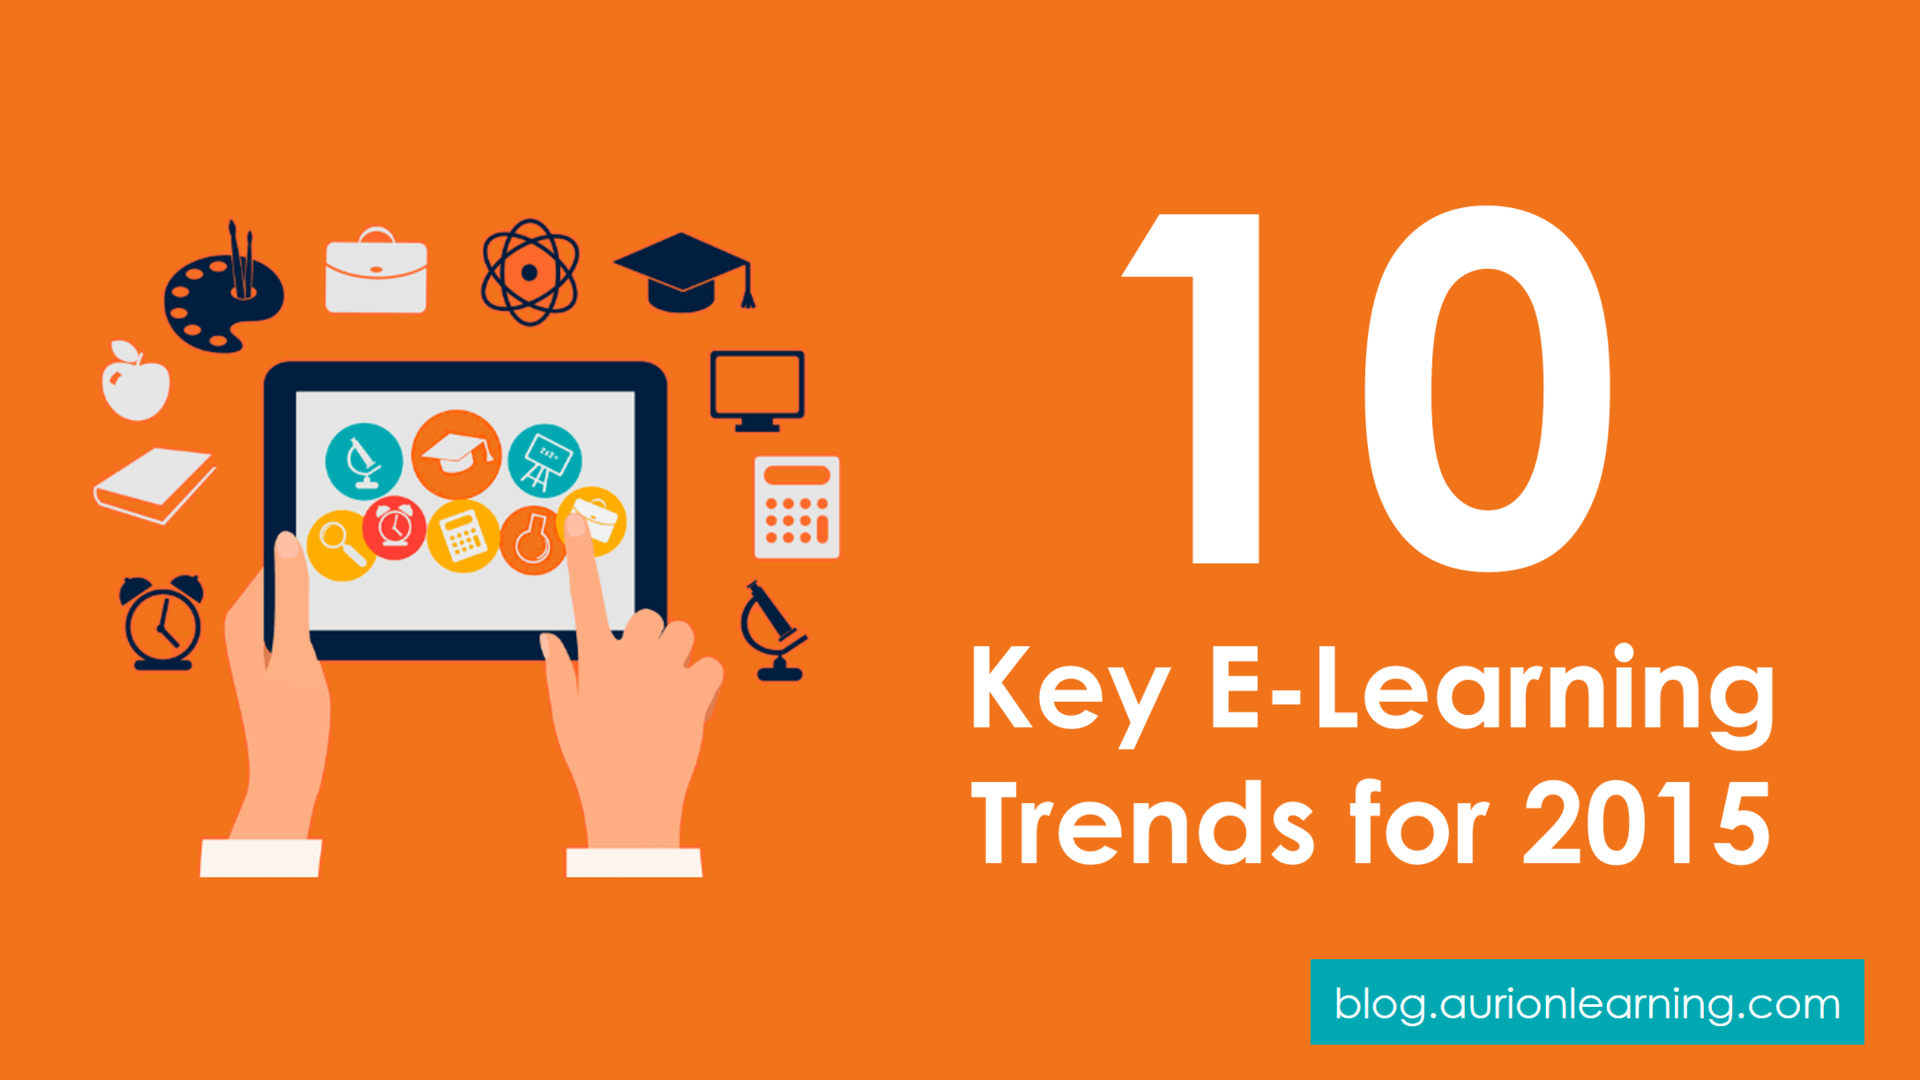 Learning is Evolving: 10 Key E-Learning Trends for 2015  | Aurion Learning thumbnail